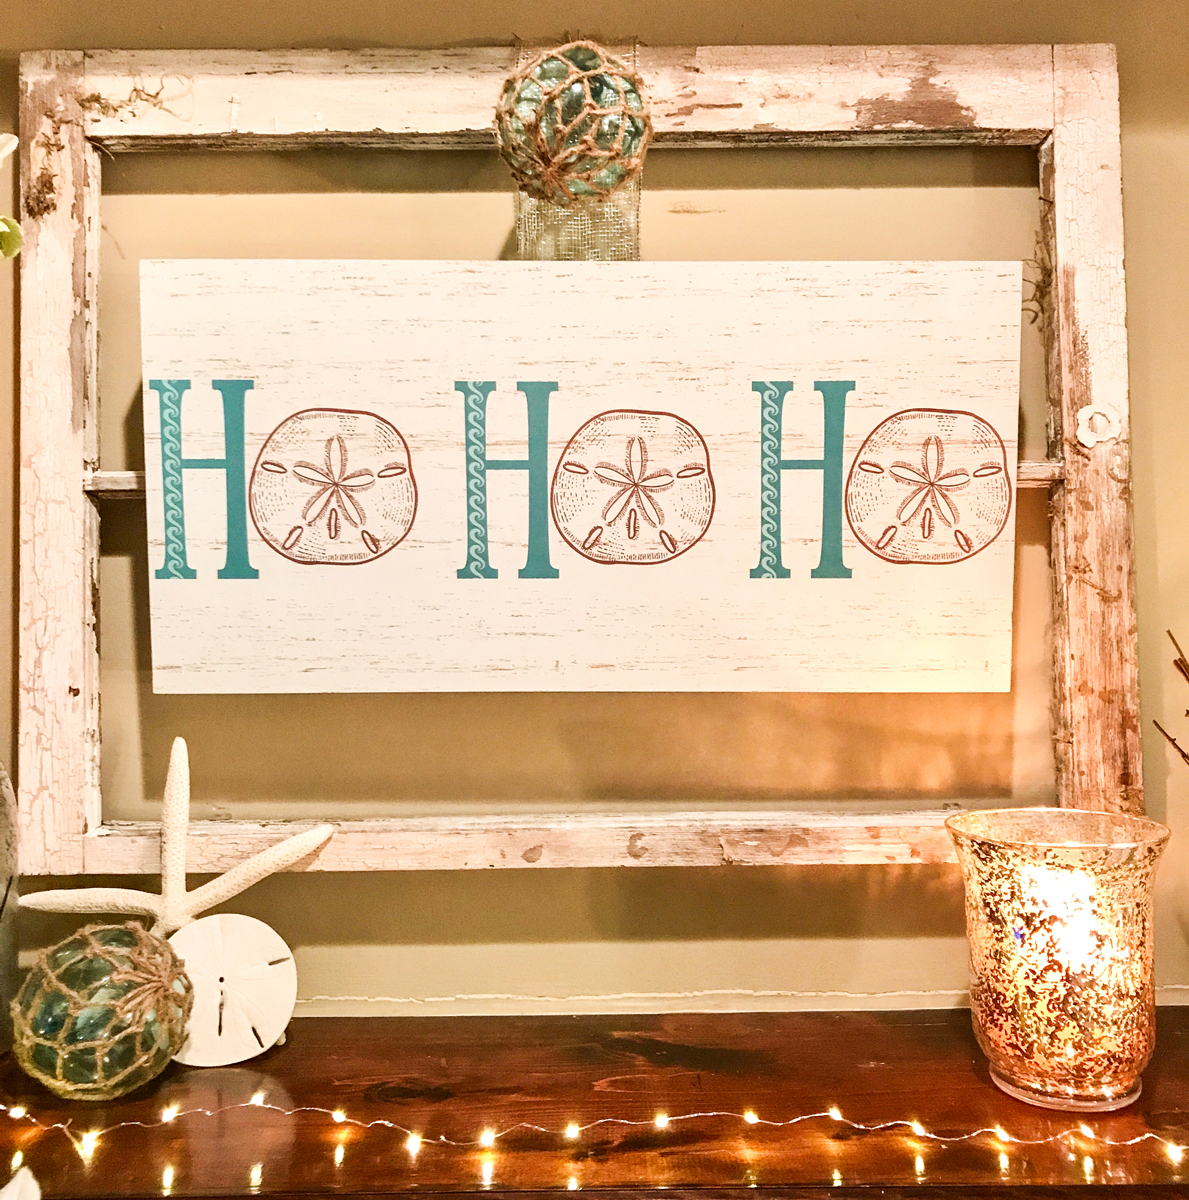 Rustic Beach Christmas Mantle focal point HO HO HO sign